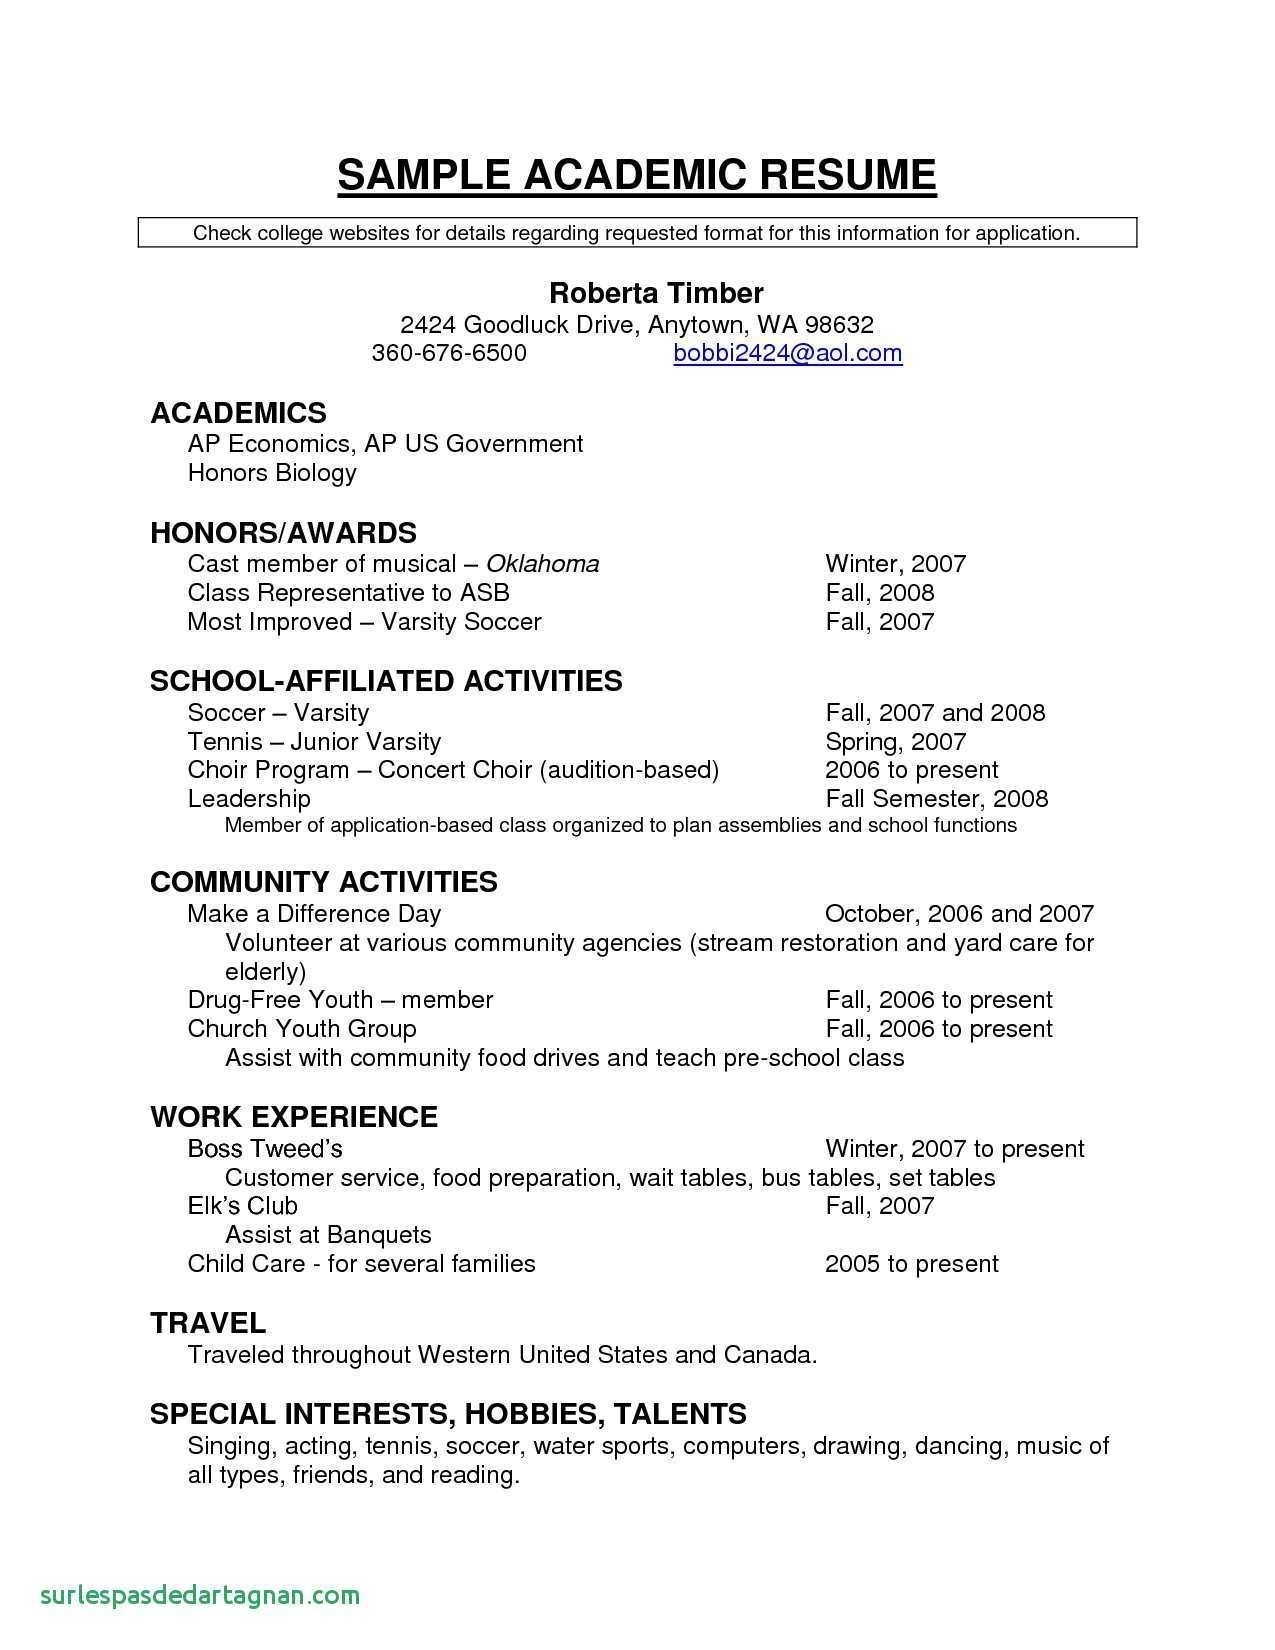 Financial Advisor Resume Template - Financial Advisor Resume Unique Fresh Financial Advisor Resume